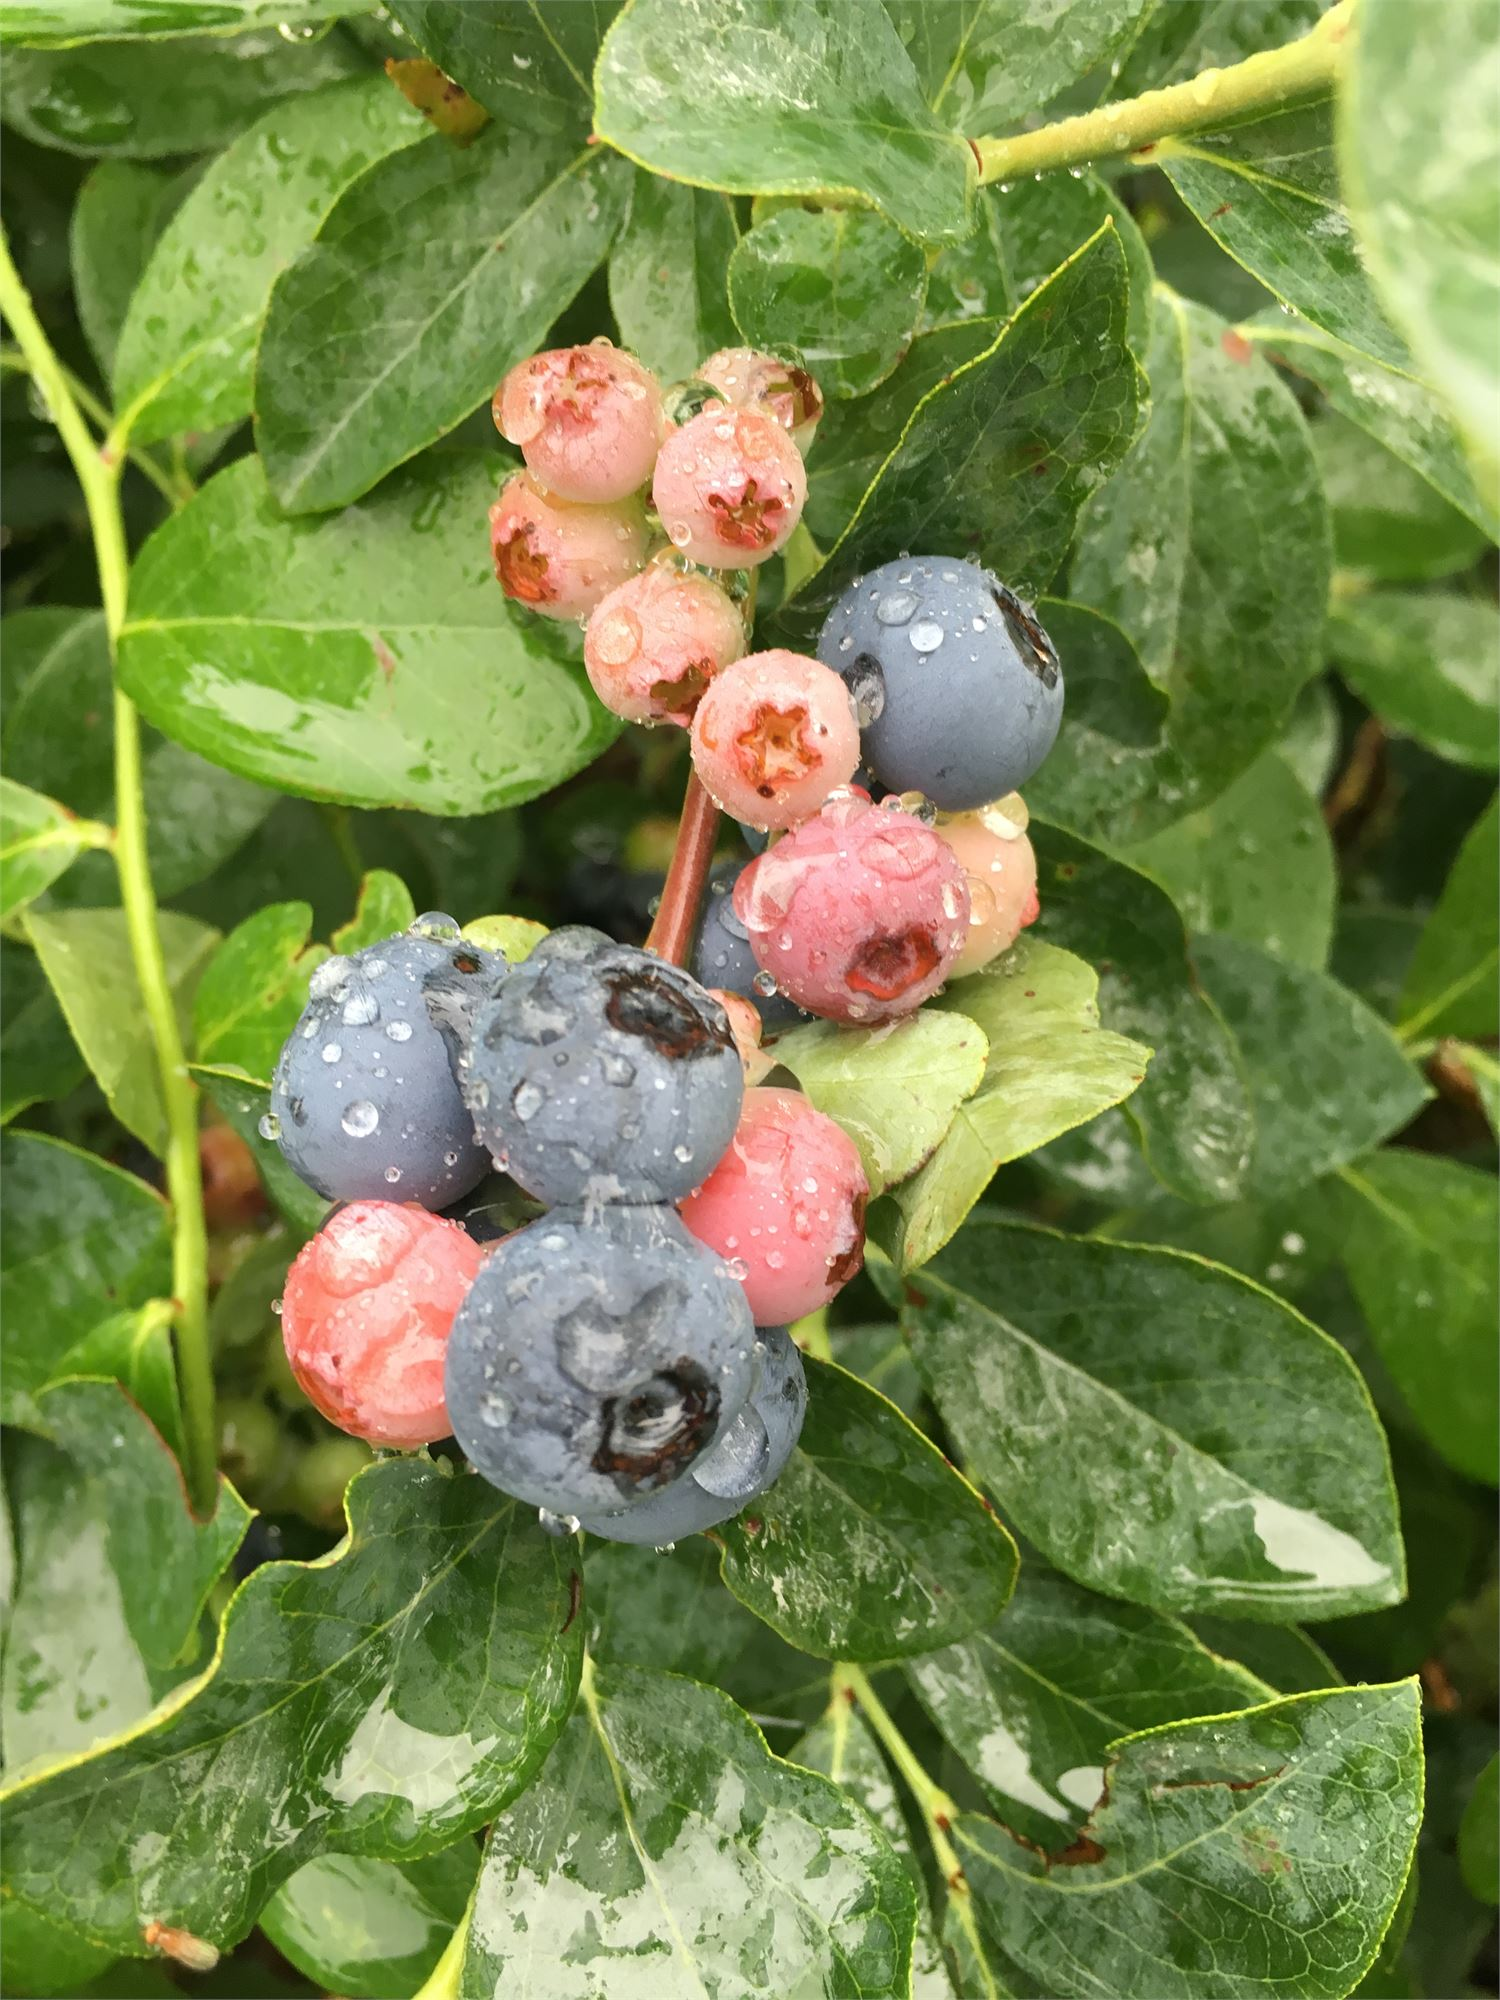 Lake Creek Blueberry Farm